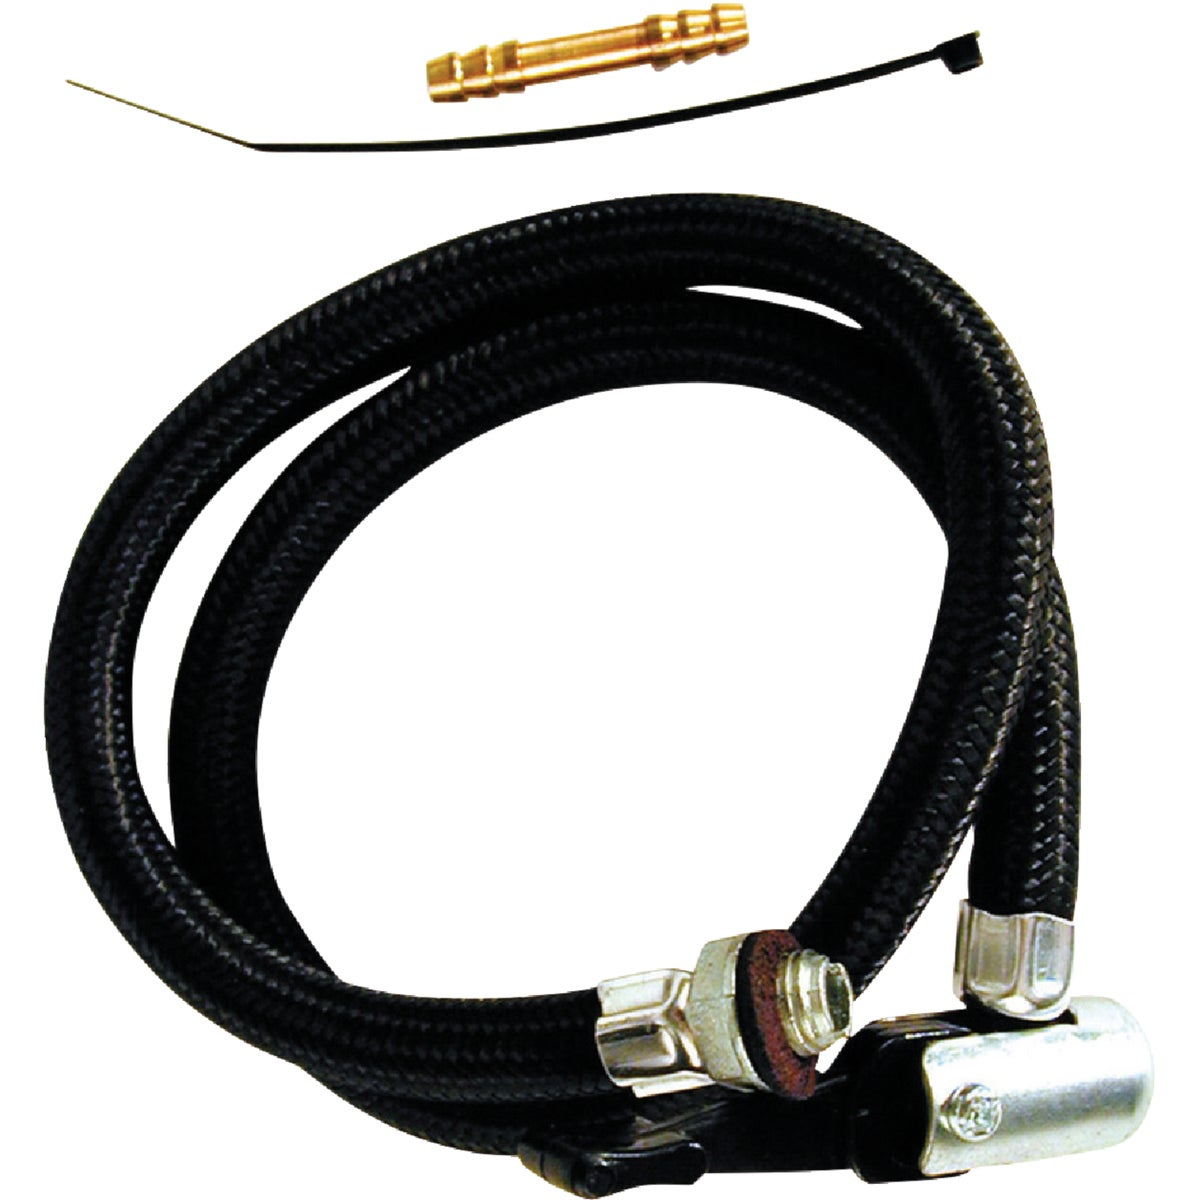 REPLACEMENT HOSE - 5100 by Airpower America